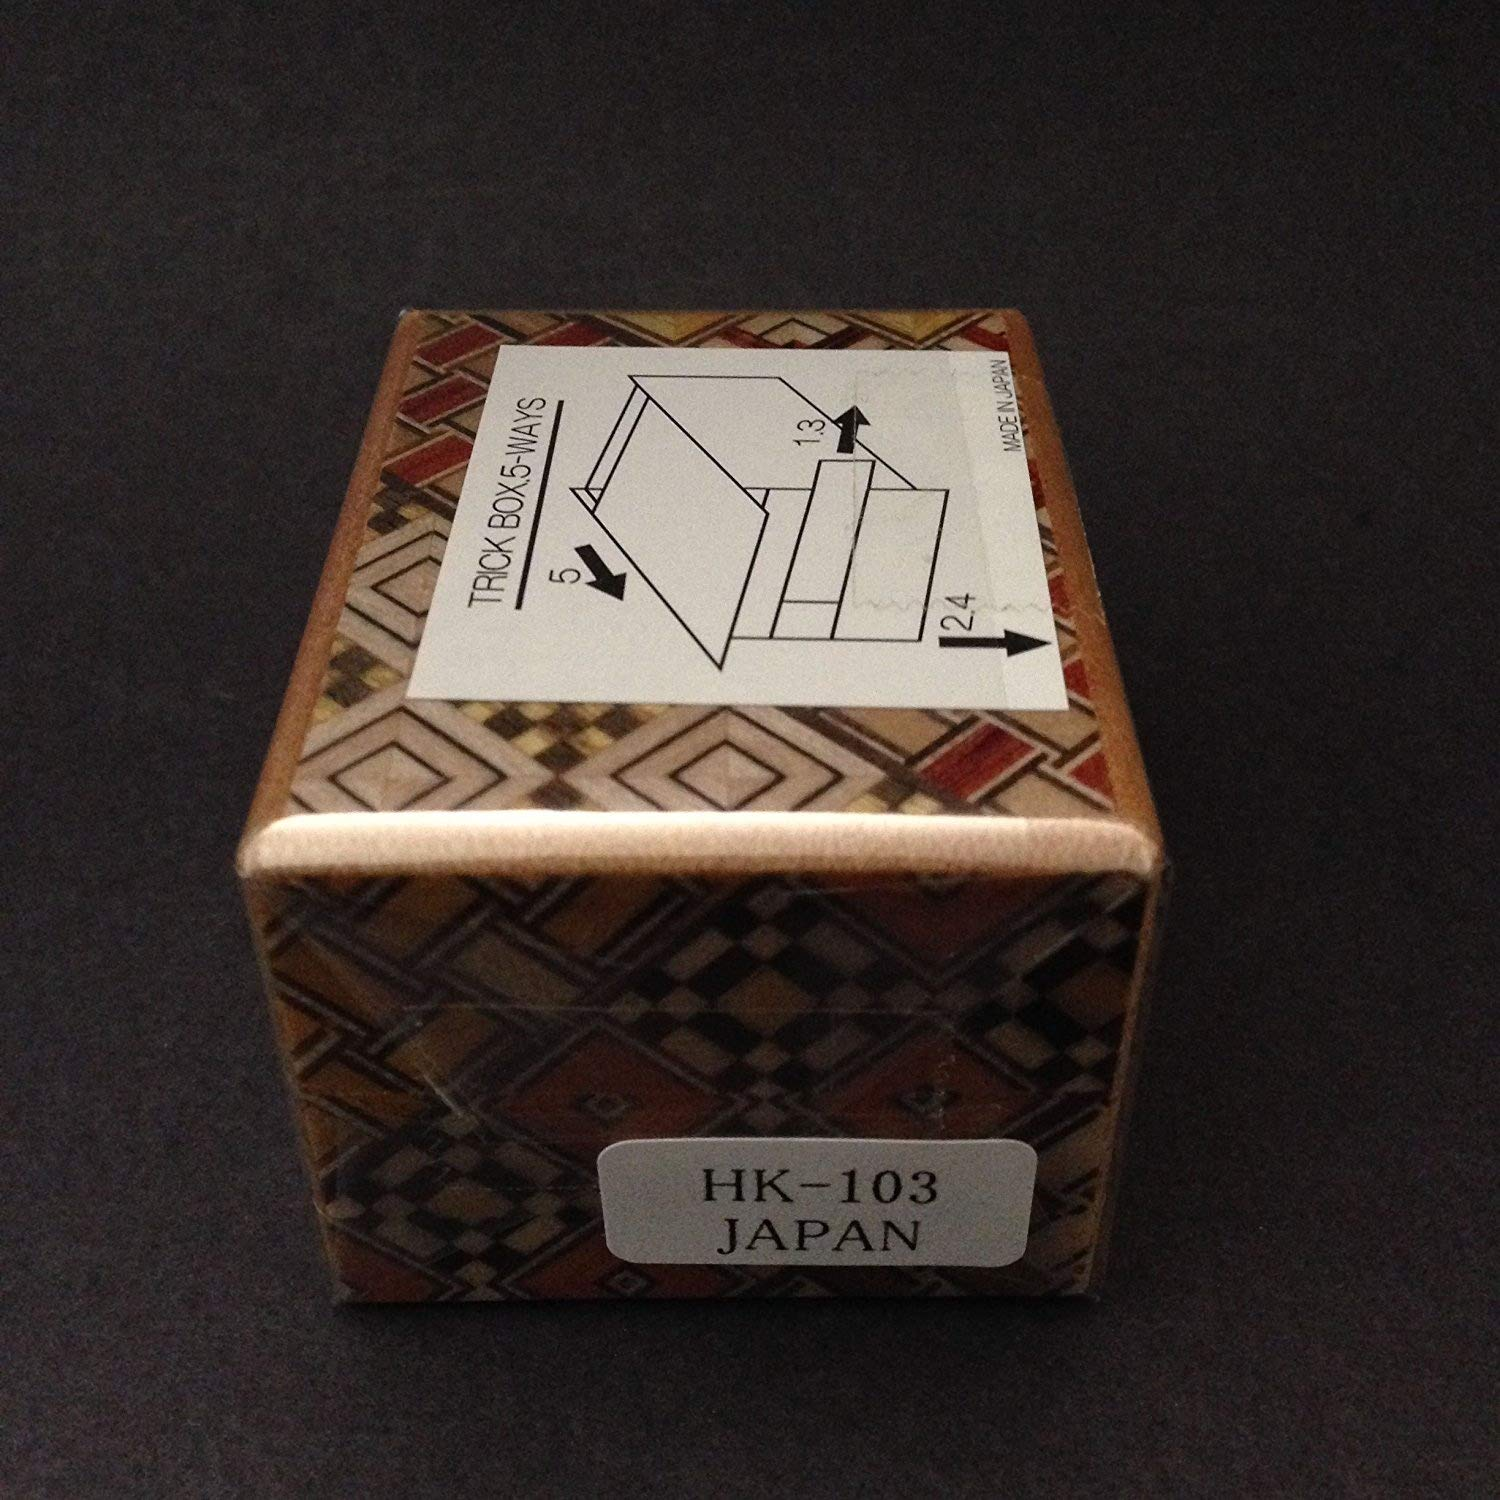 Japanese Wooden Yosegi Magic Secret Puzzle Trick Box #HK-103 (5-Way Steps), Made in Japan Yokohama Gifts